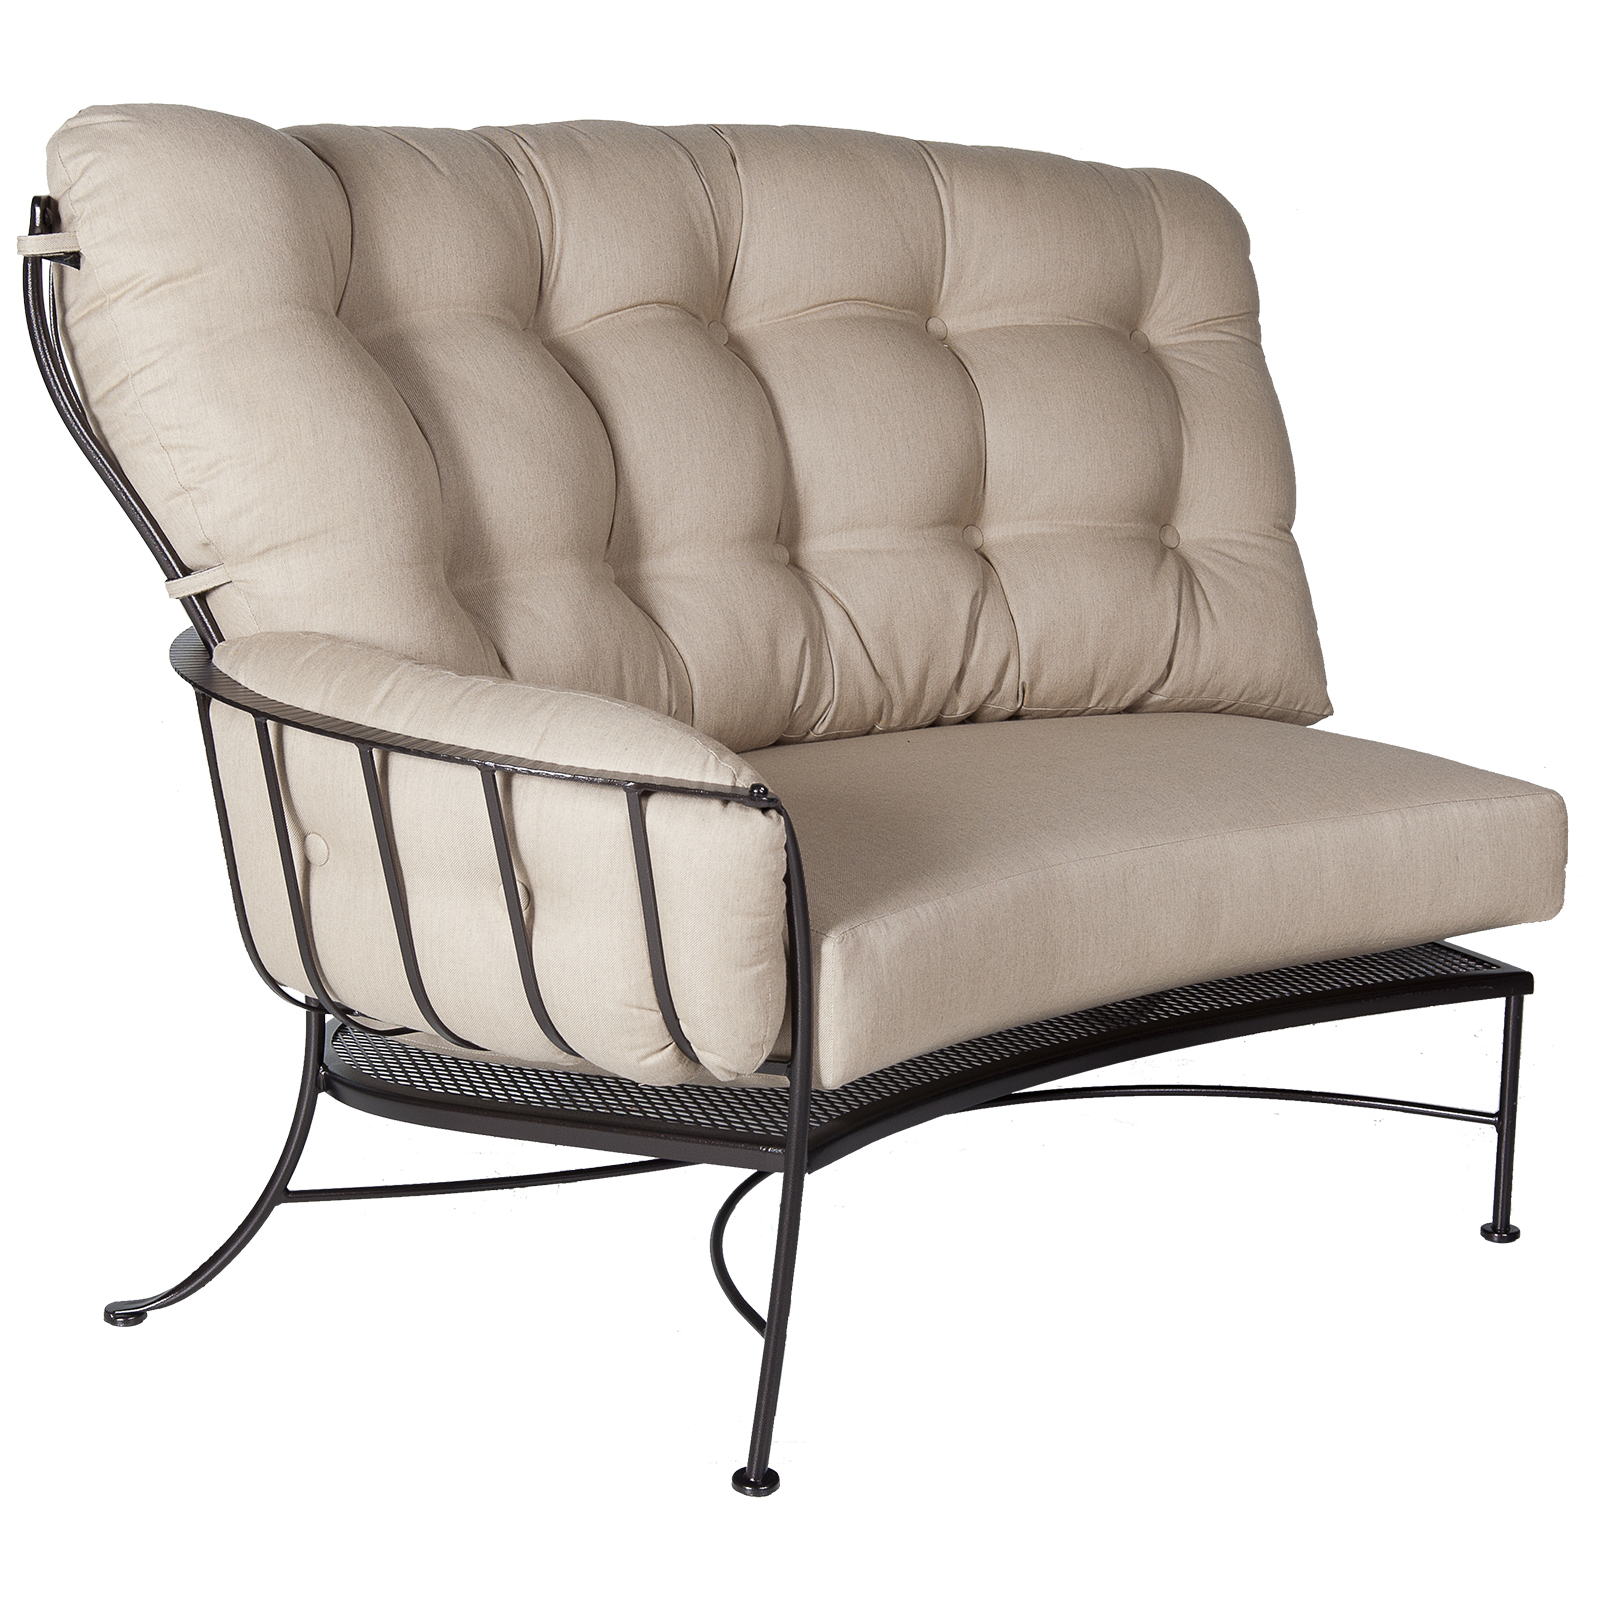 Monterra Cushion Right Section - Flagship Silver